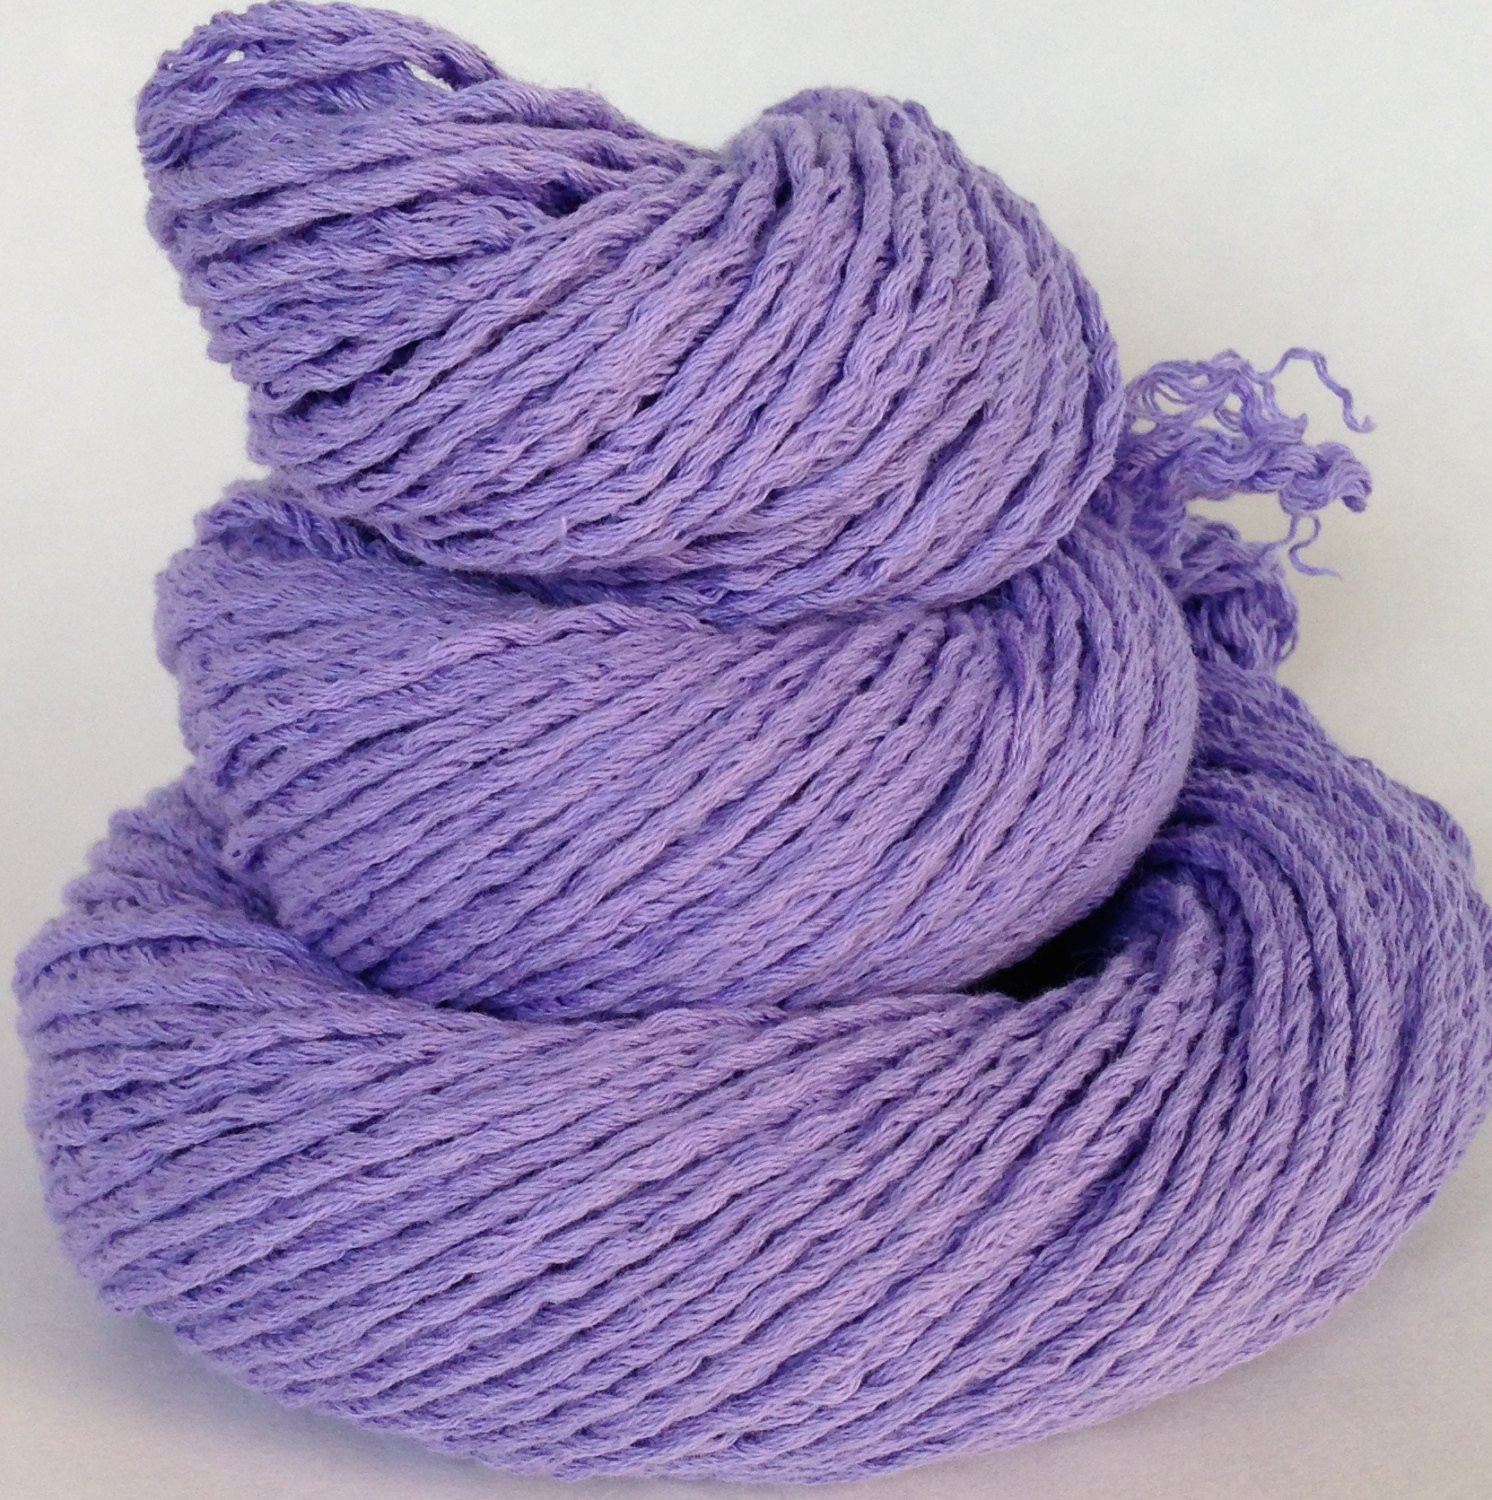 5 Weight Yarn Awesome Cotton Yarn Worsted Weight Purple Reclaimed Handspun Yarn Of Charming 47 Images 5 Weight Yarn